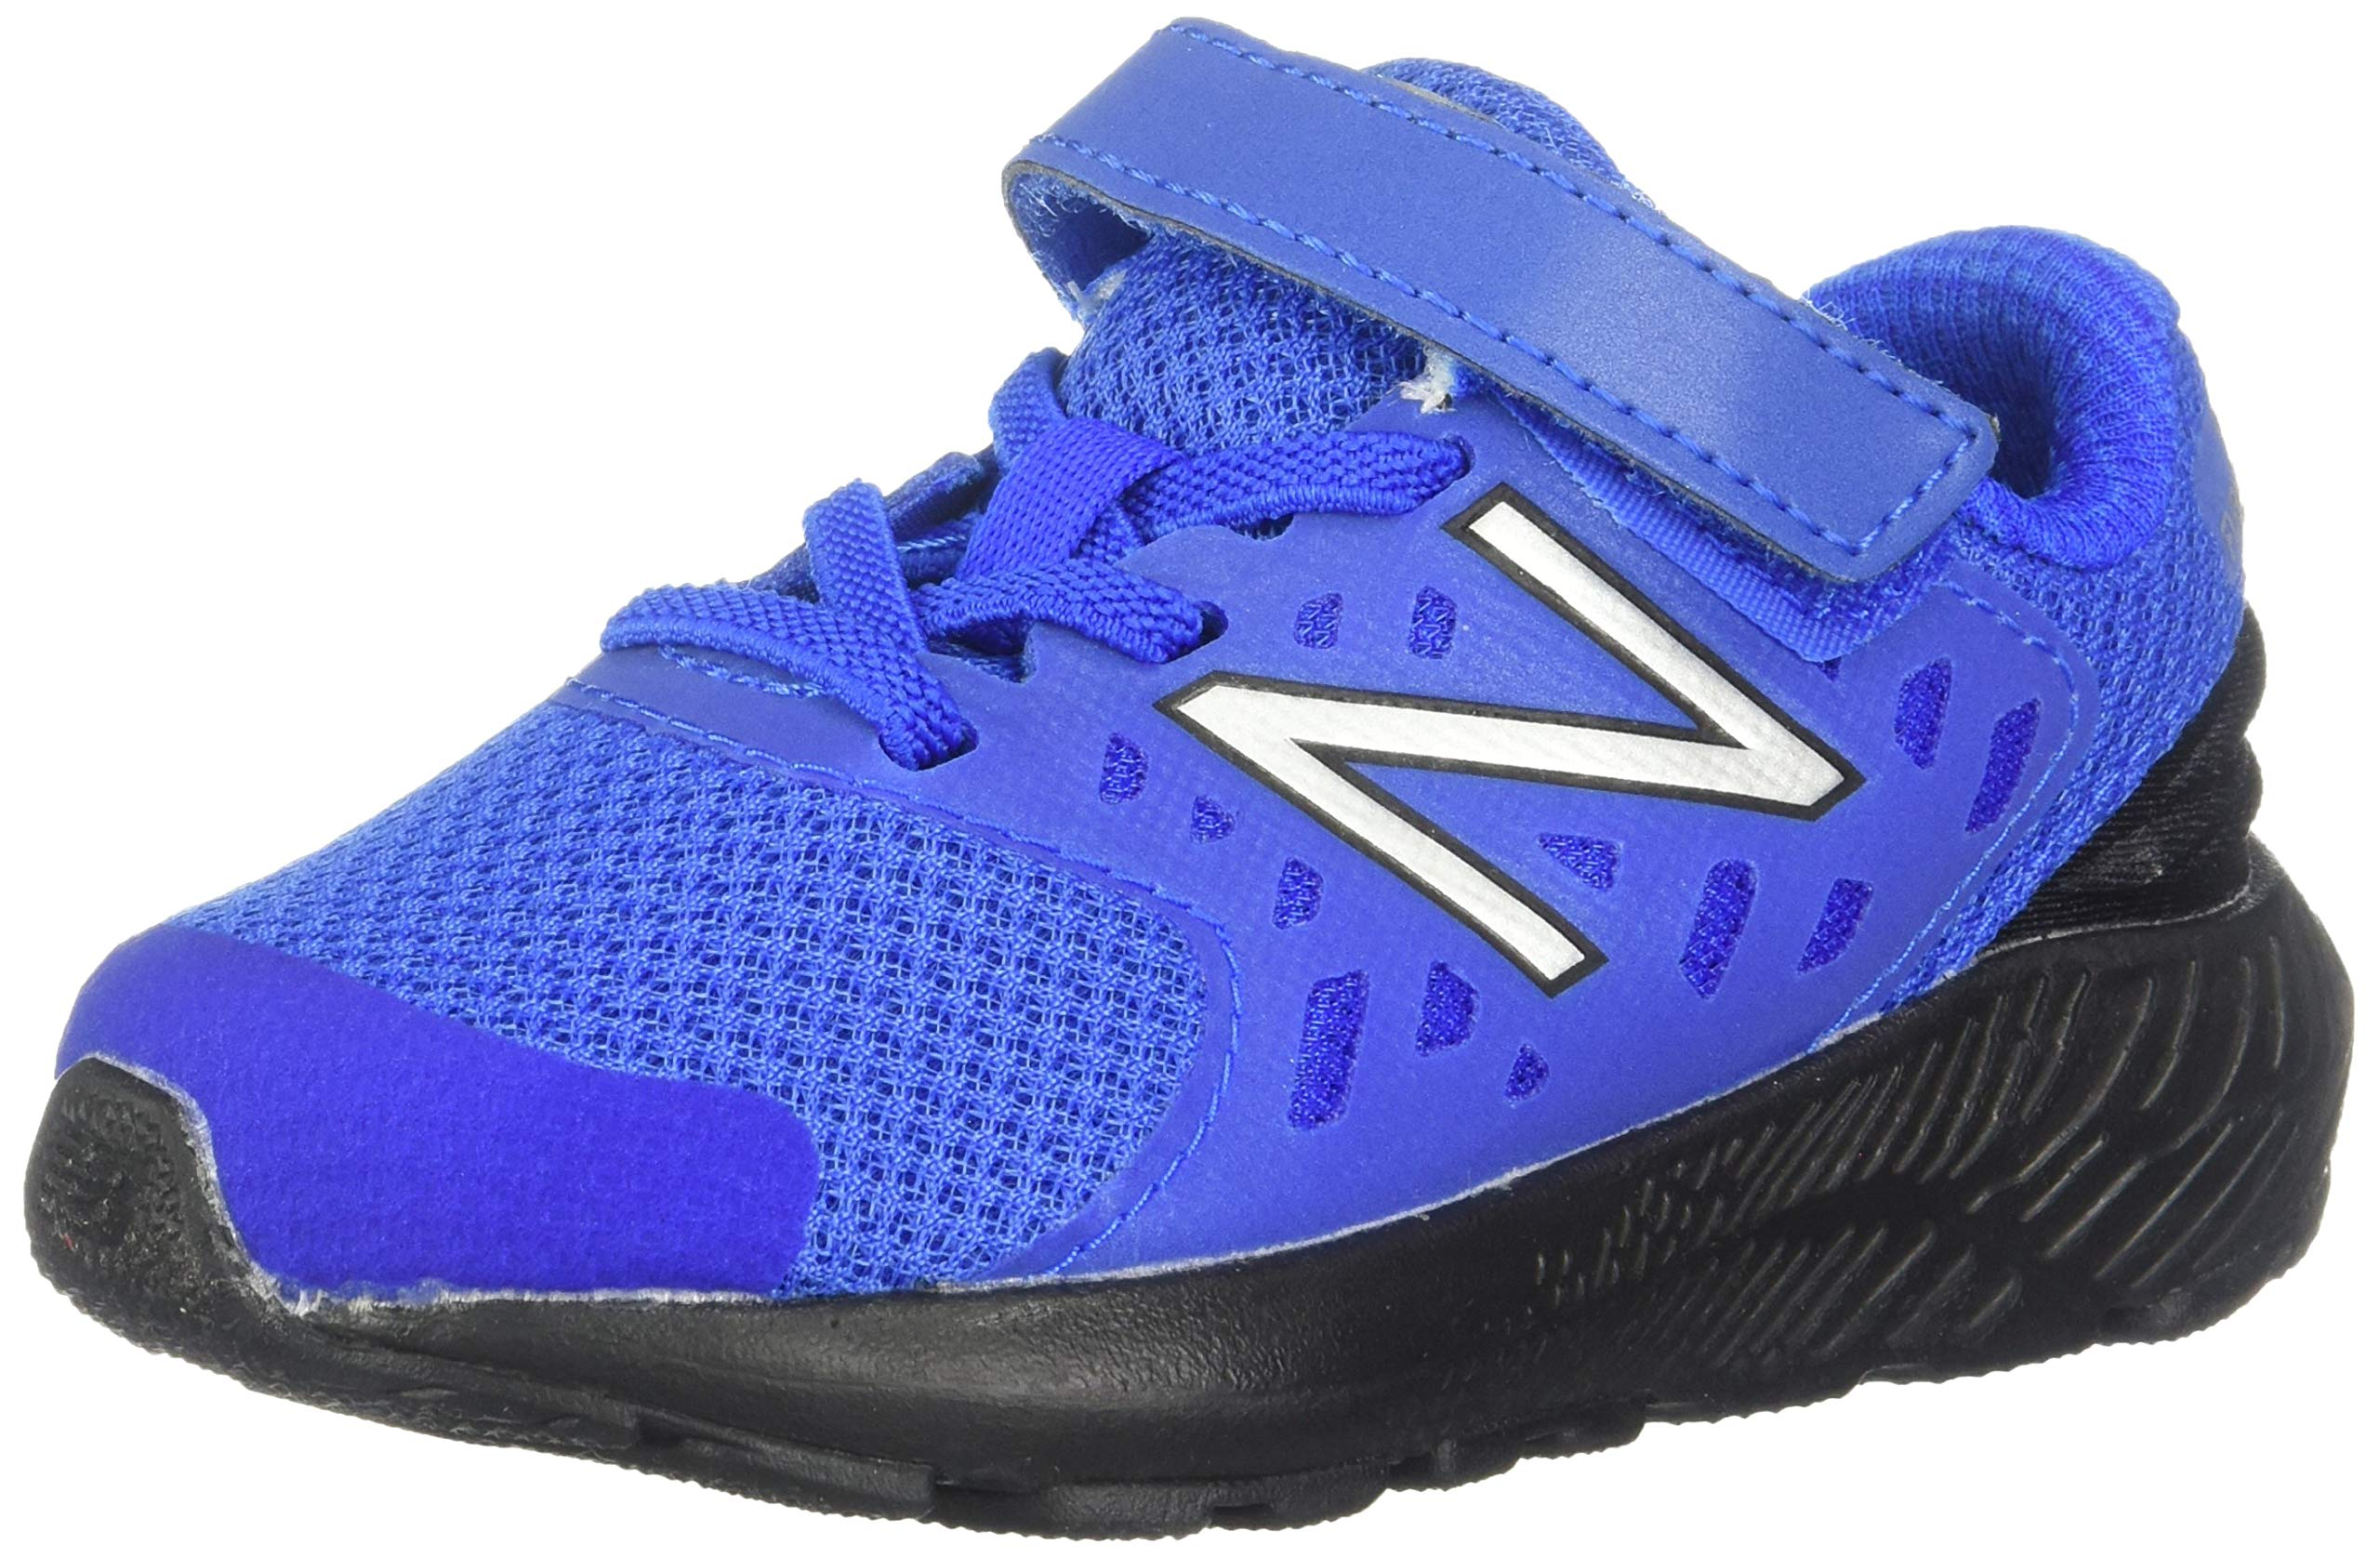 New Balance Boys' Urge V2 FuelCore Running Shoe, Vivid Cobalt/Black, 8.5 M US Toddler by New Balance